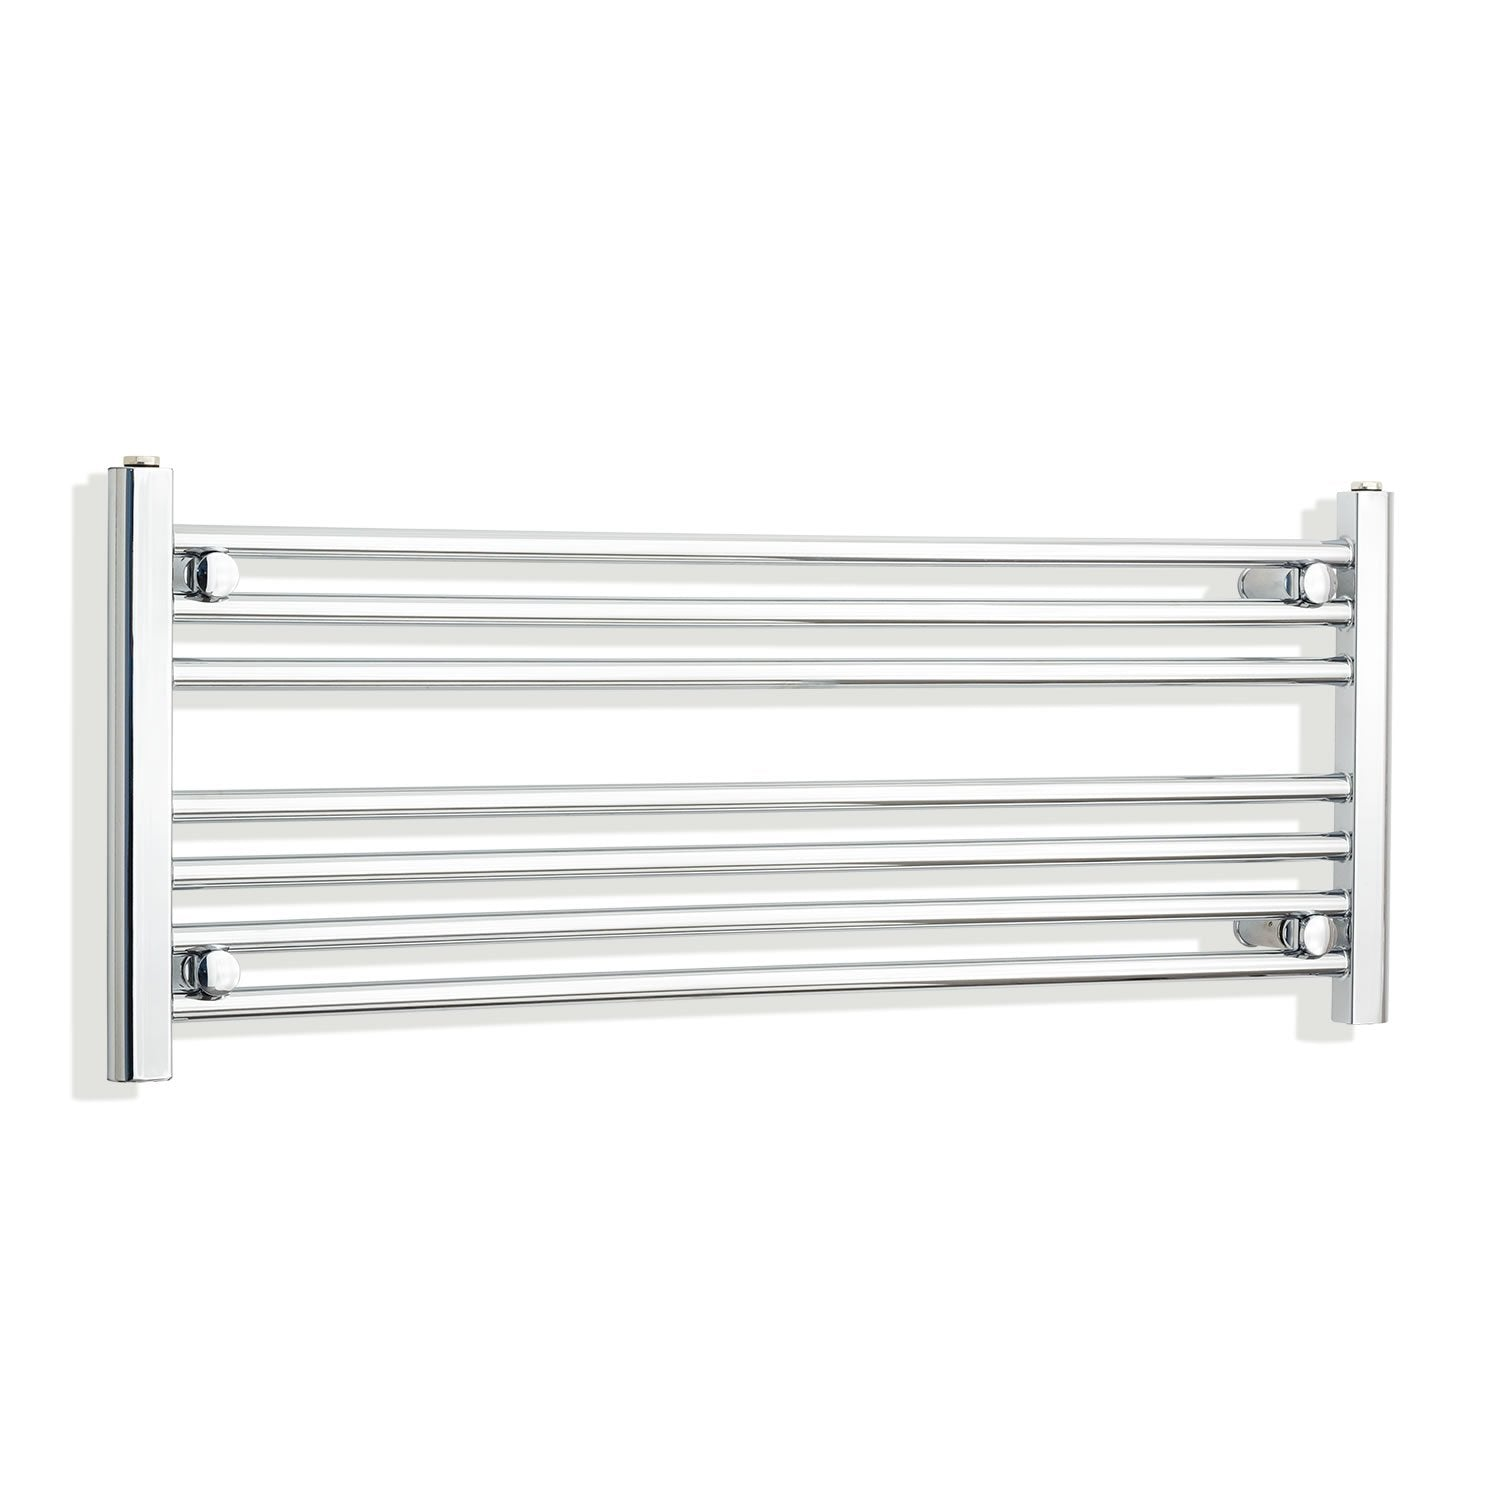 1100mm Wide 400mm High Flat Chrome Heated Towel Rail Radiator HTR,With Straight Valve